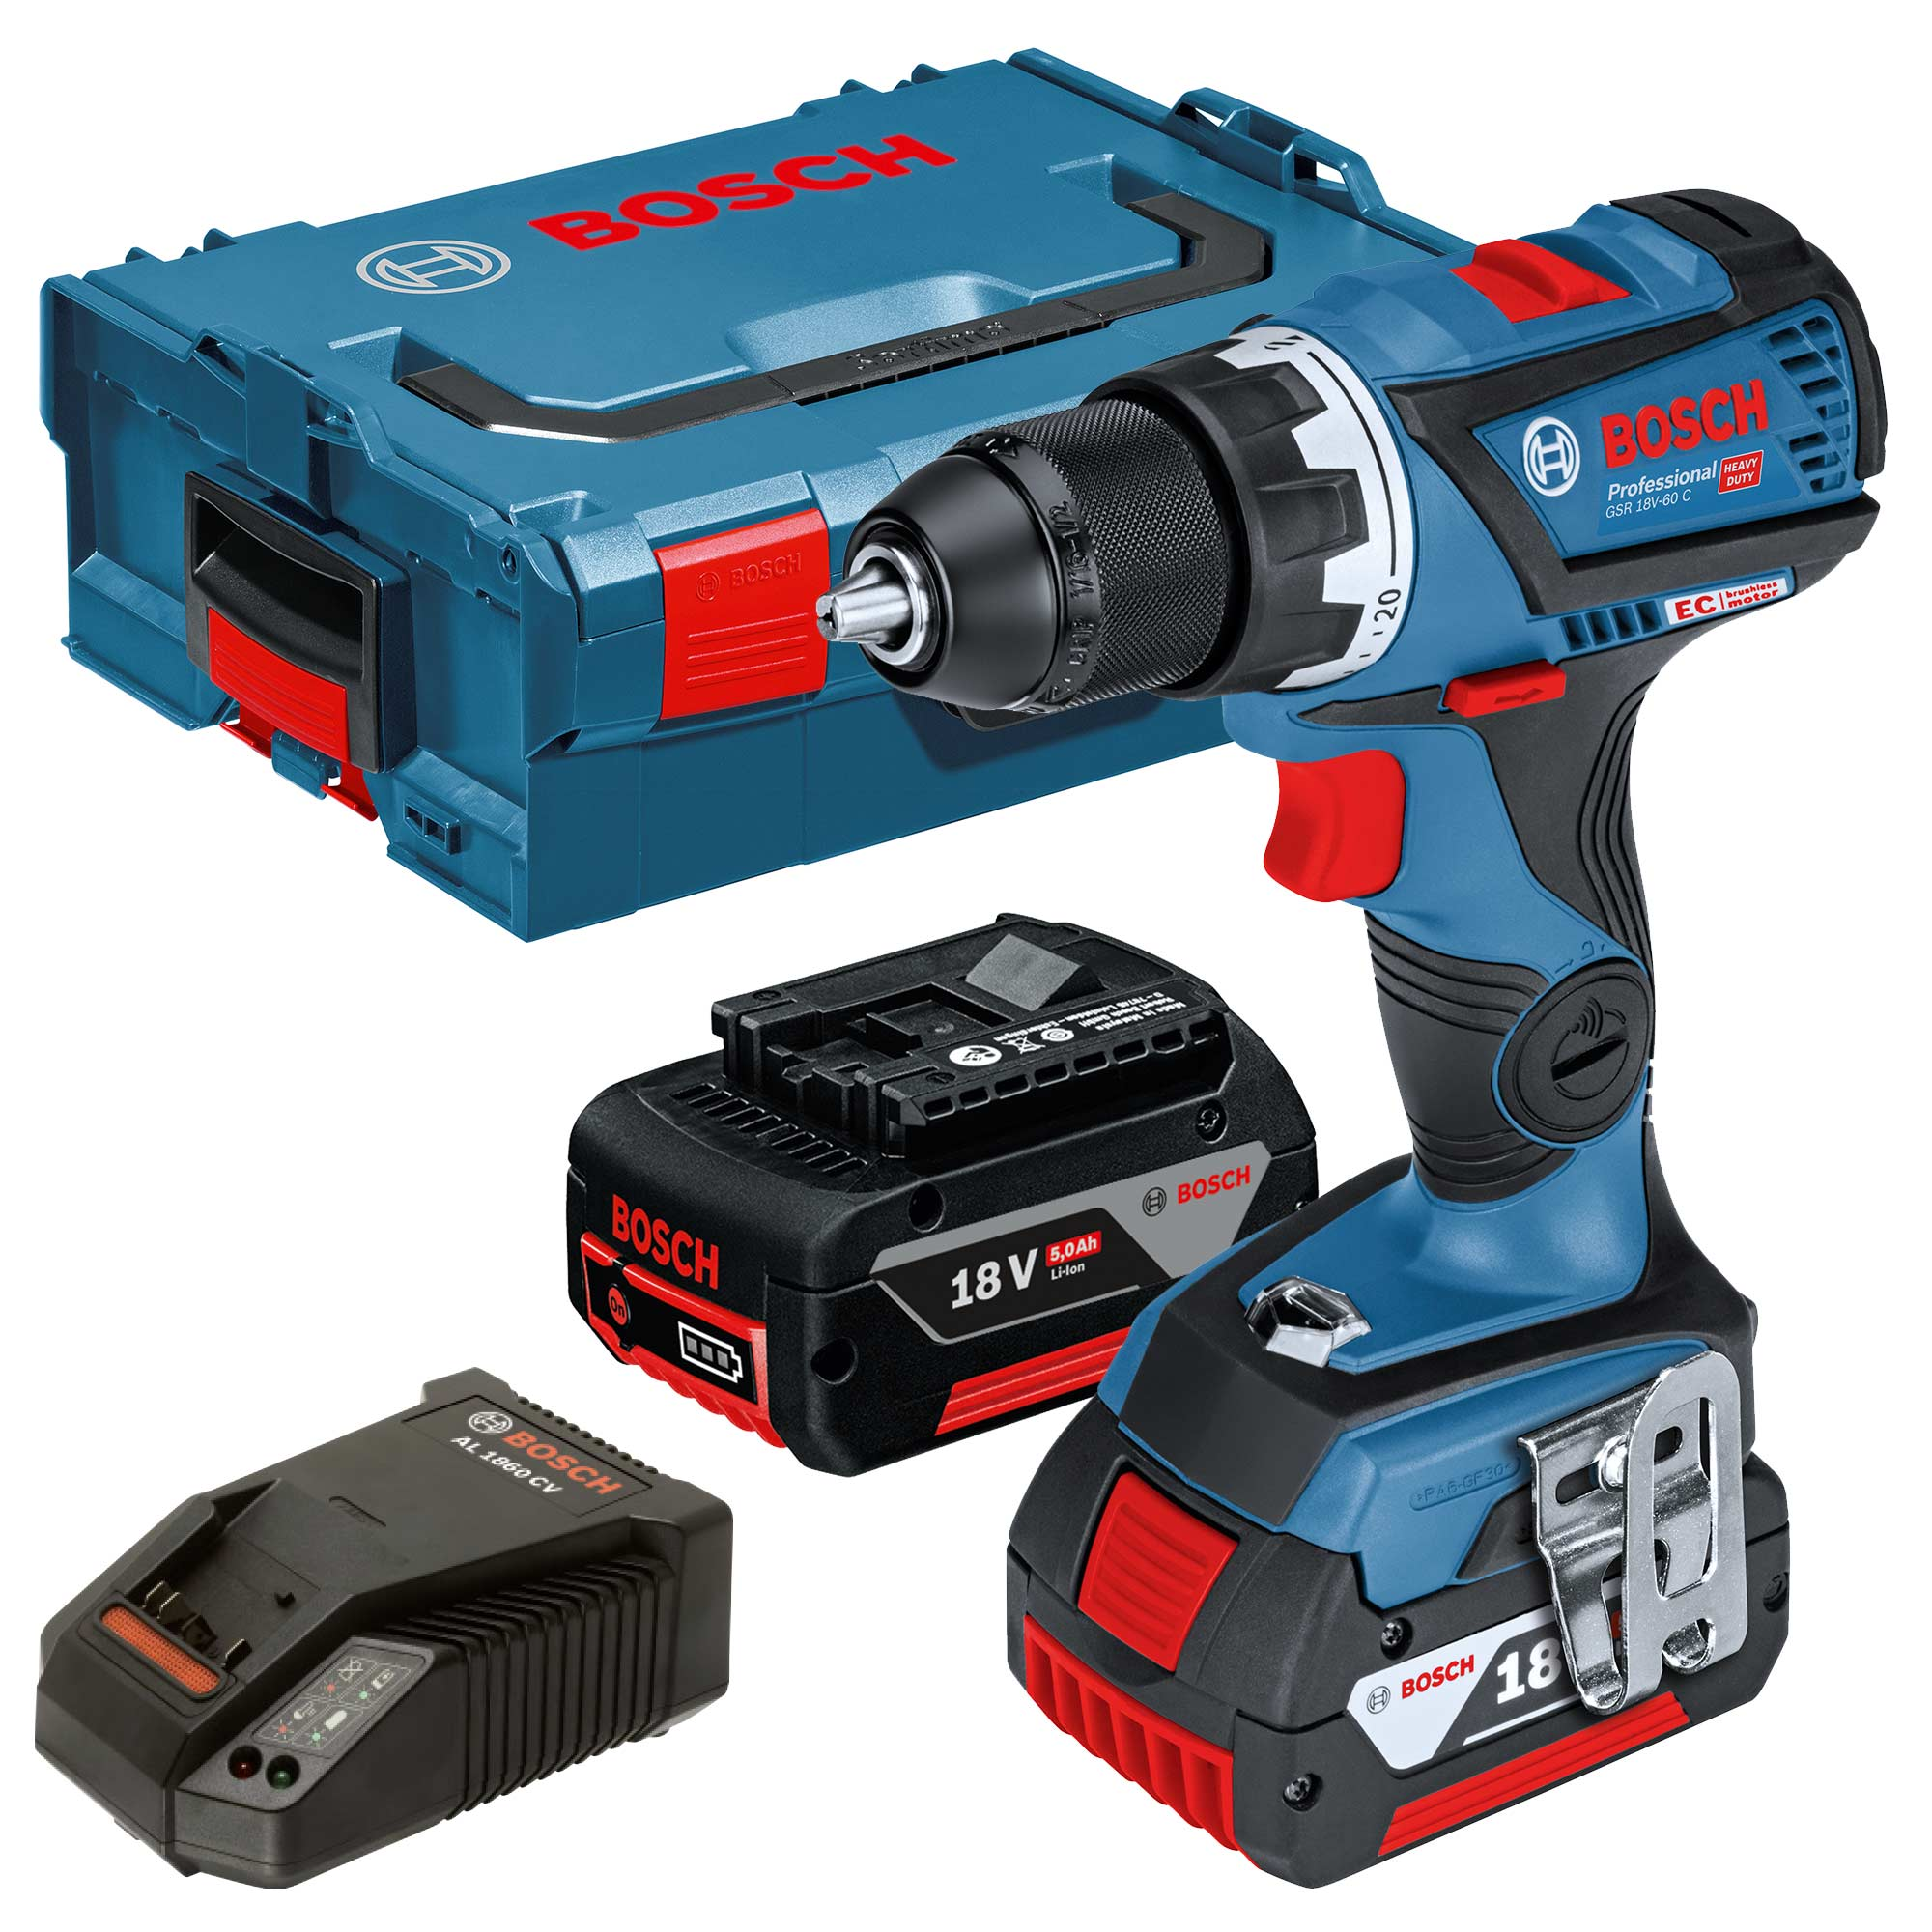 bosch gsr 18v 60 c bosch 18v cordless brushless 2 speed drill driver. Black Bedroom Furniture Sets. Home Design Ideas